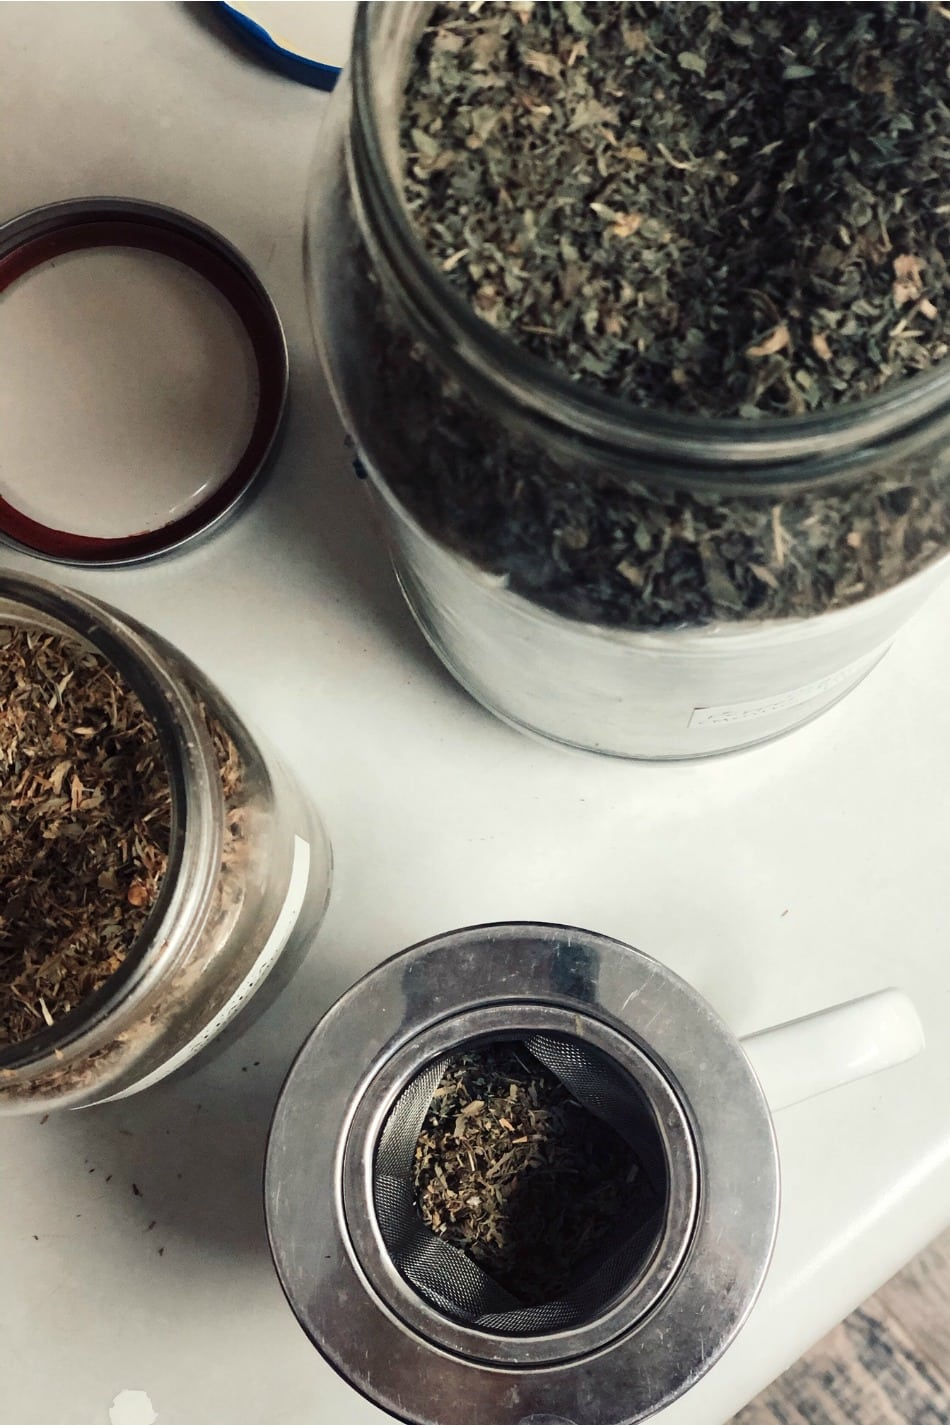 dried herbs in jars, making tea